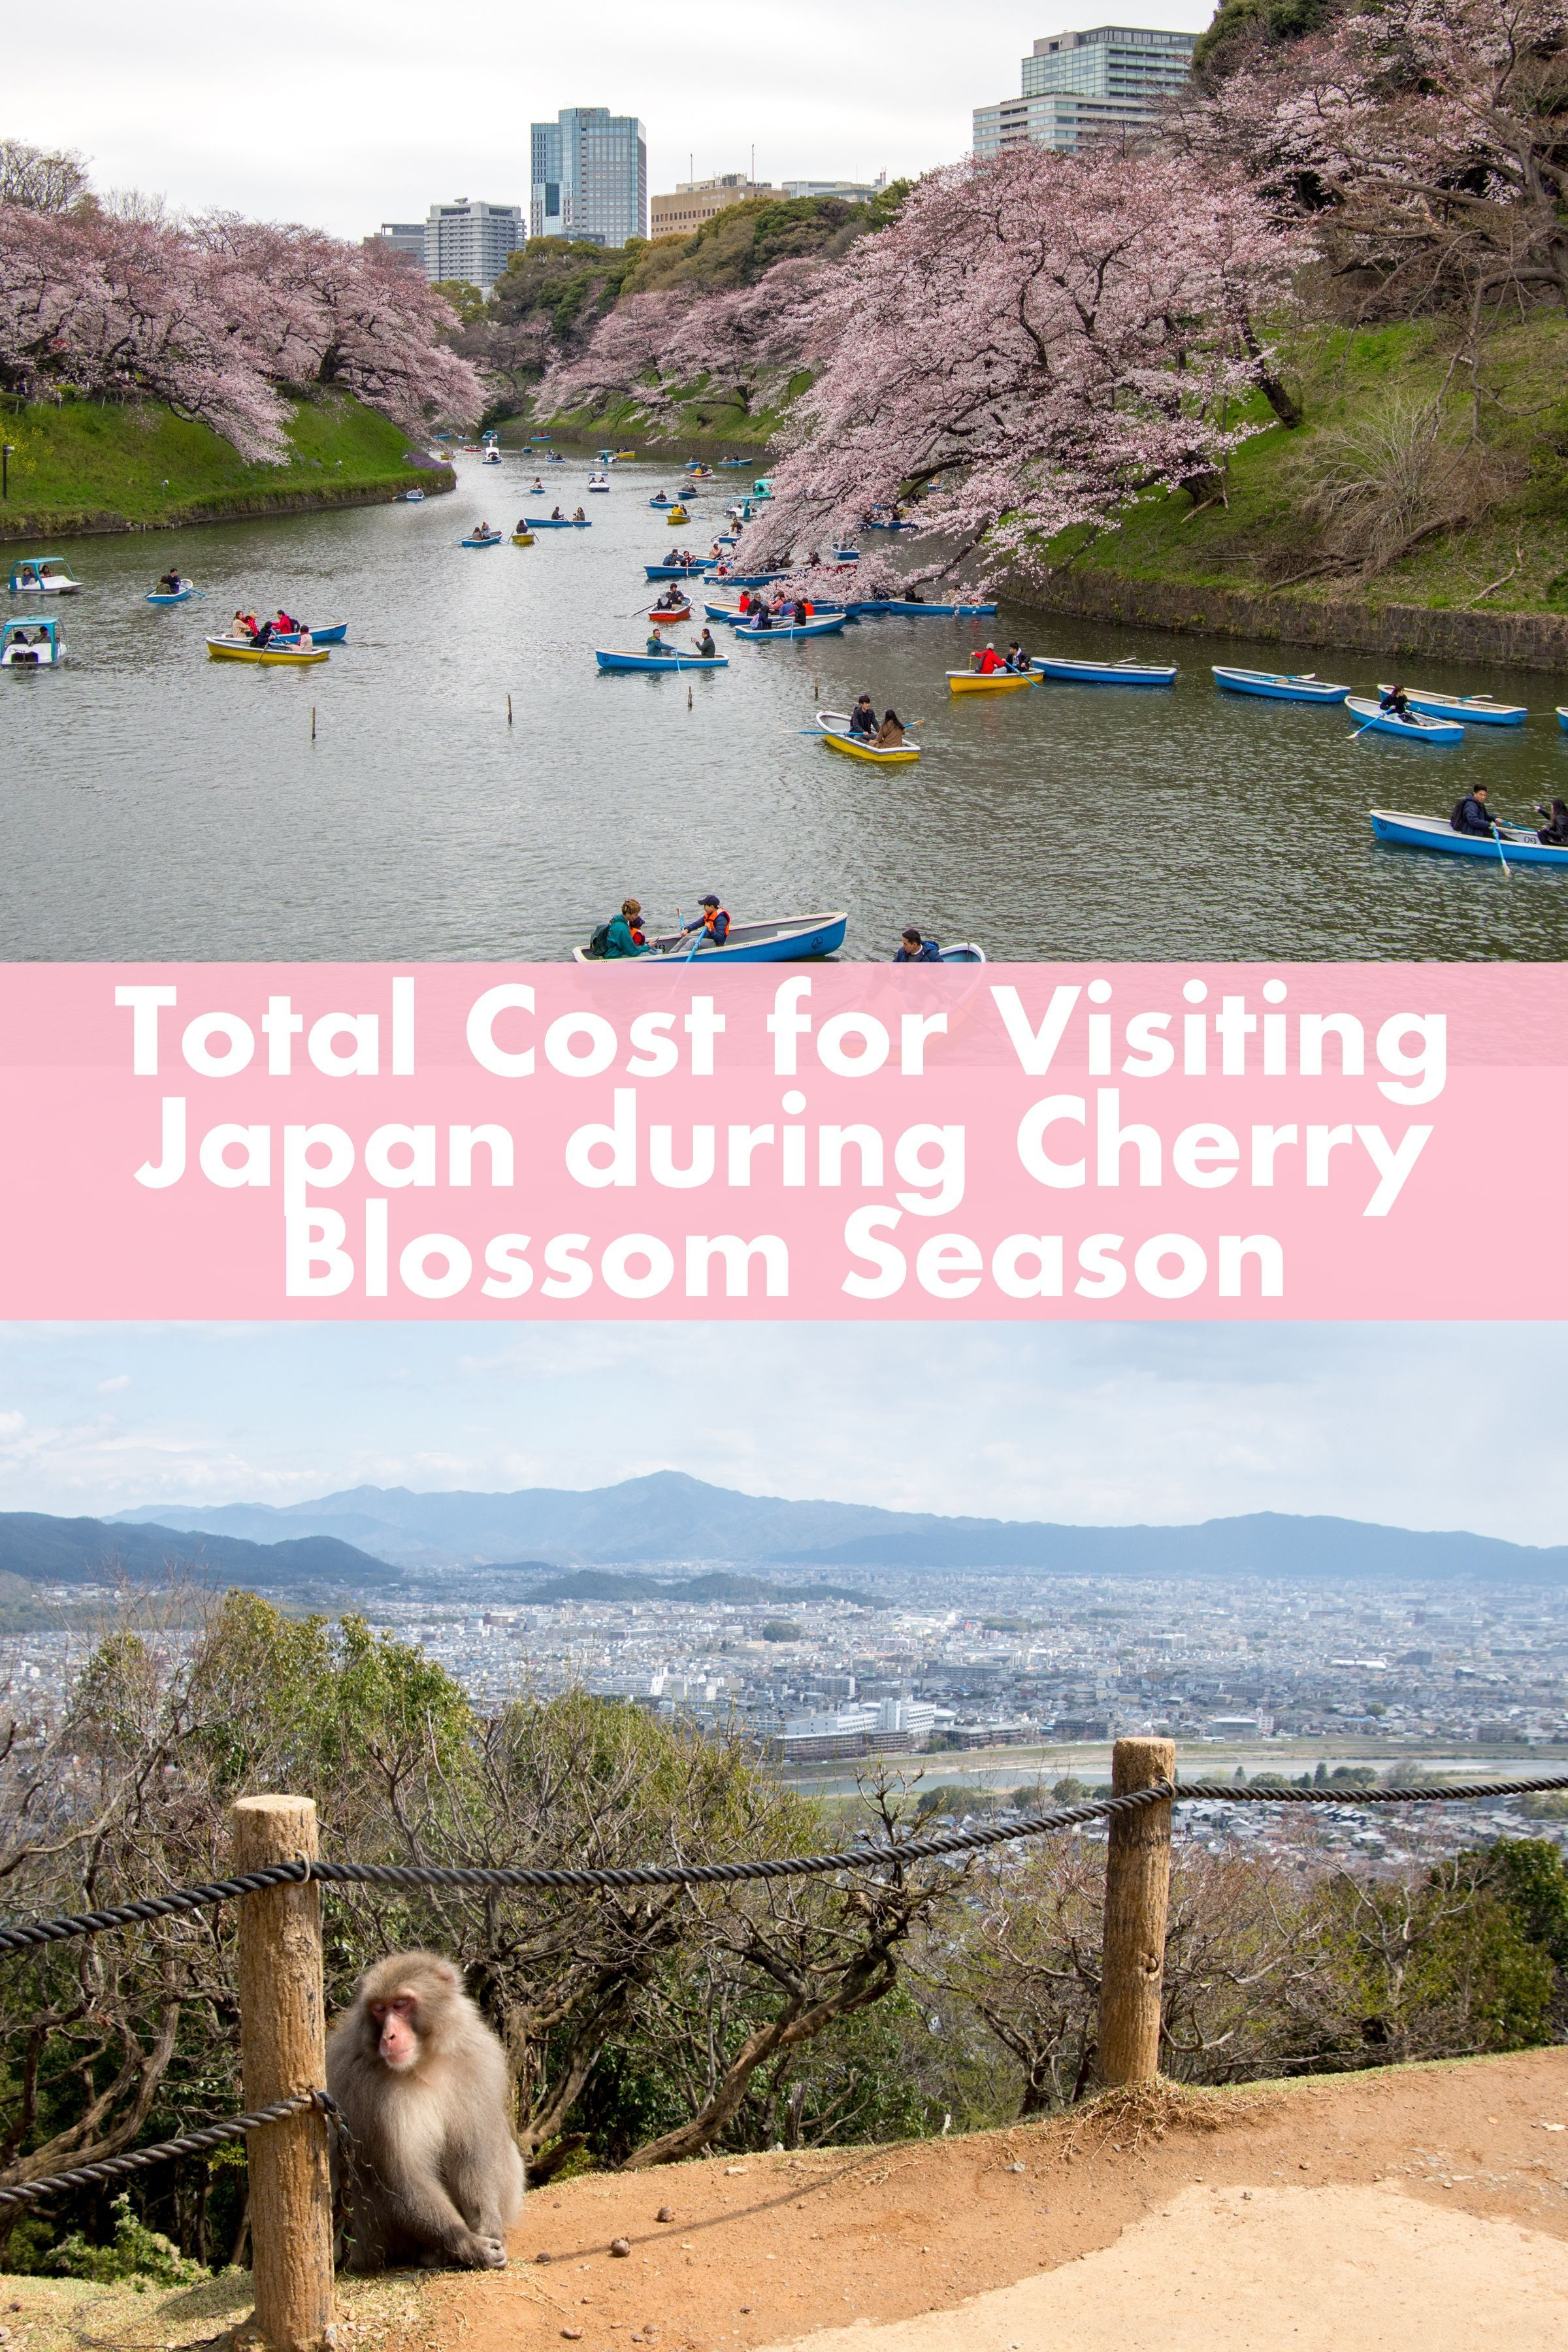 How Much Does It Cost To Travel To Japan Here Is A Detailed Account Of Everything We Spent On Our 2 Week Trip Around Japan During C Japan Travel Travel Japan